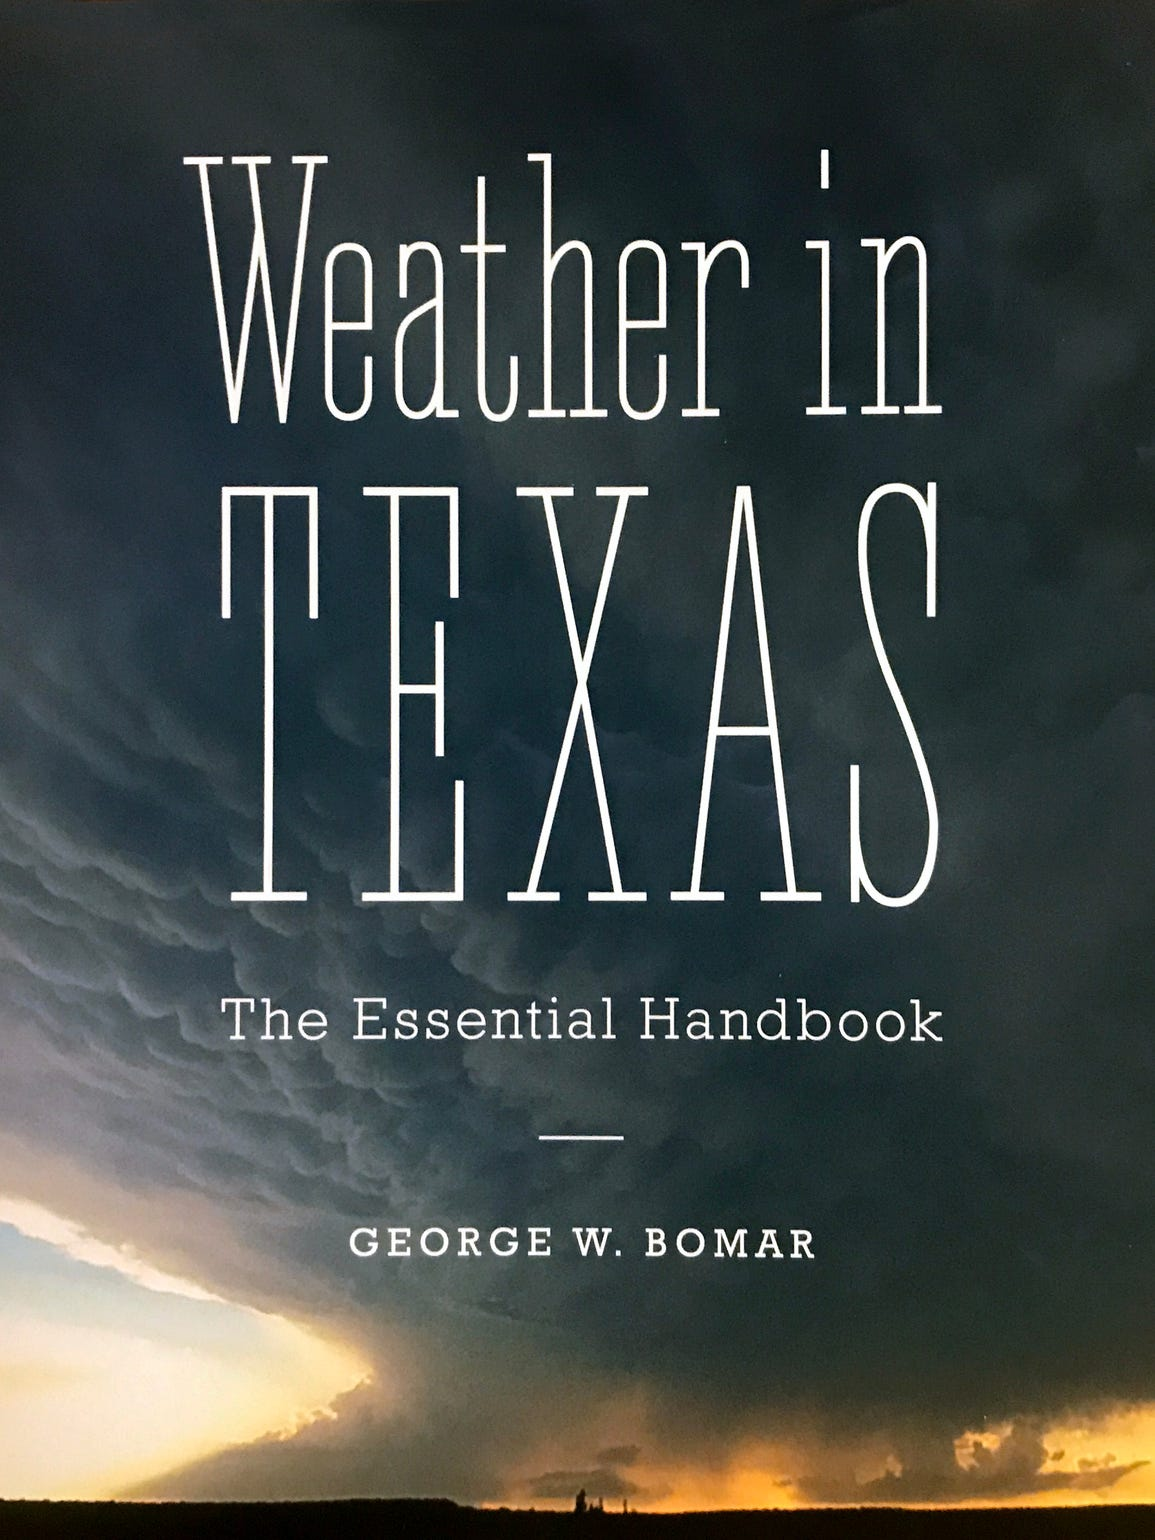 Weather in Texas by George W. Bomar